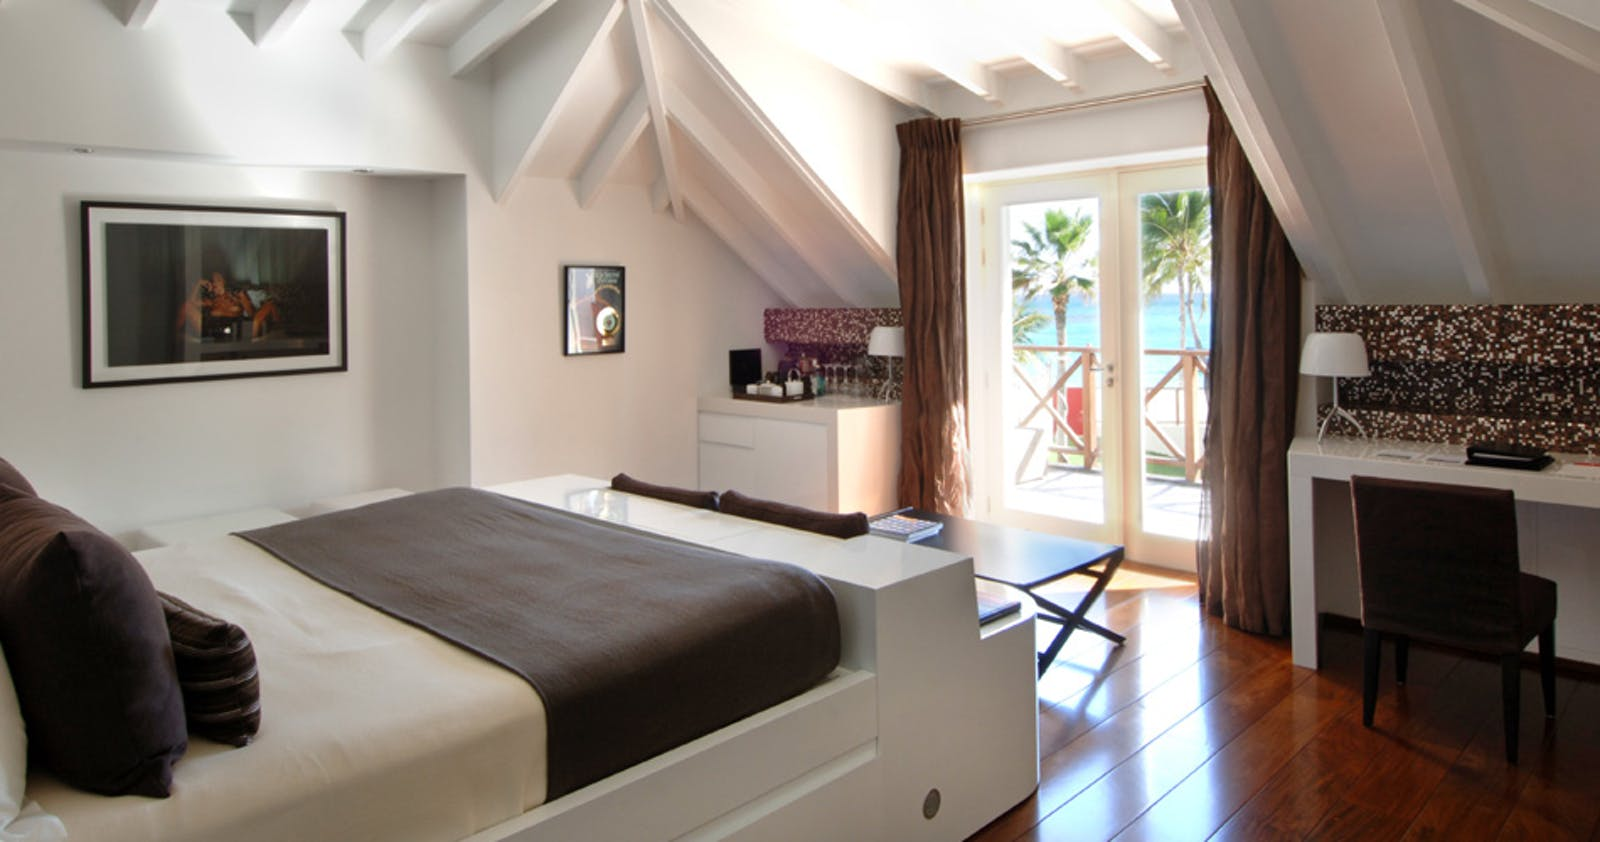 Bedroom overlooking the ocean in Rockstar Villa at Rockstar & Nina at Eden Rock